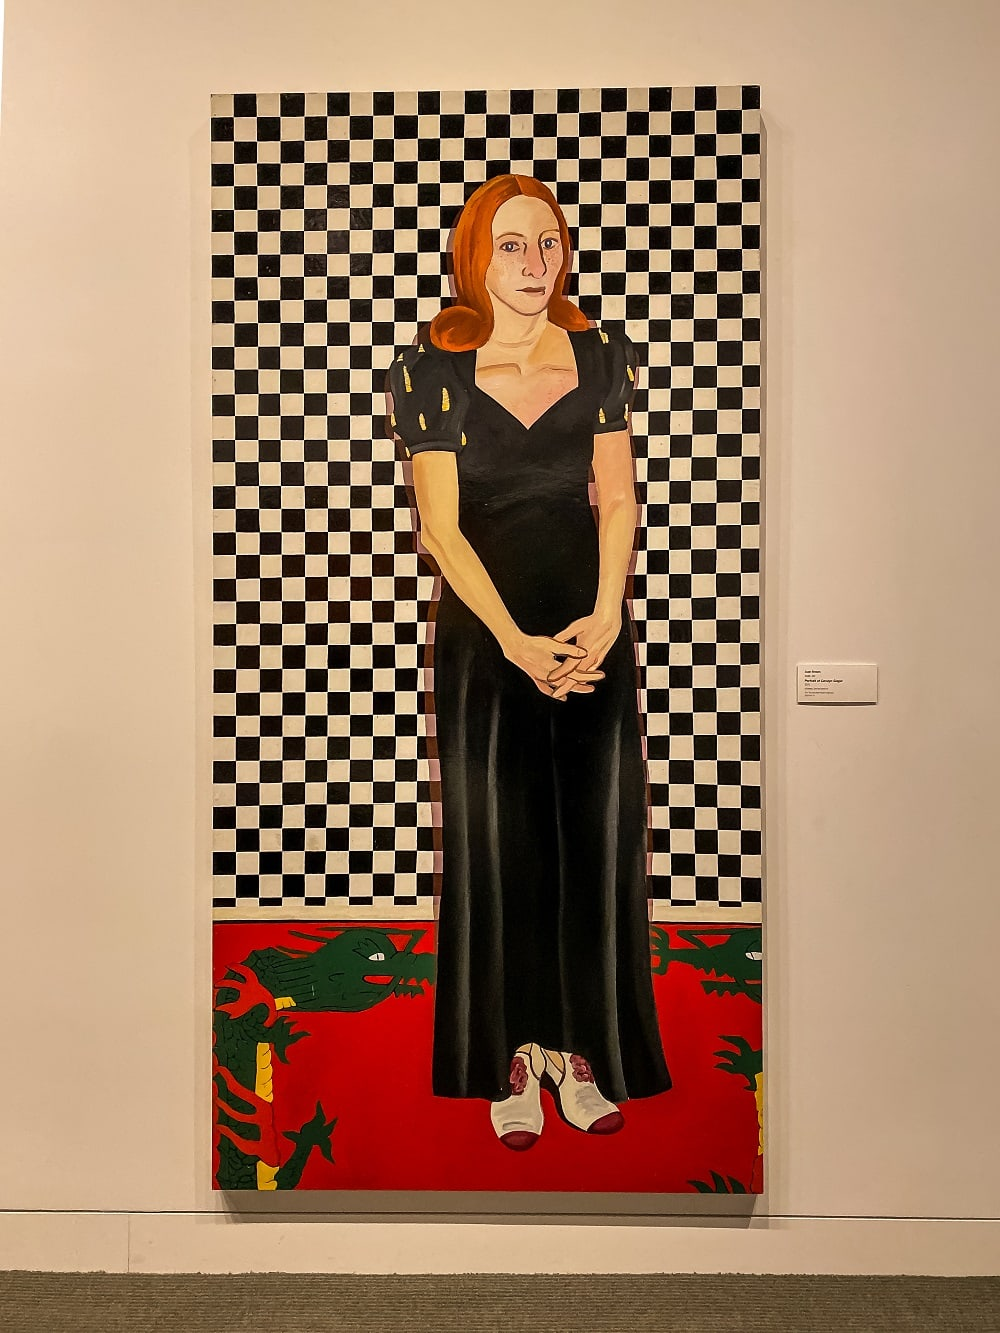 Portrait of Carolyn Singer with a checkered background